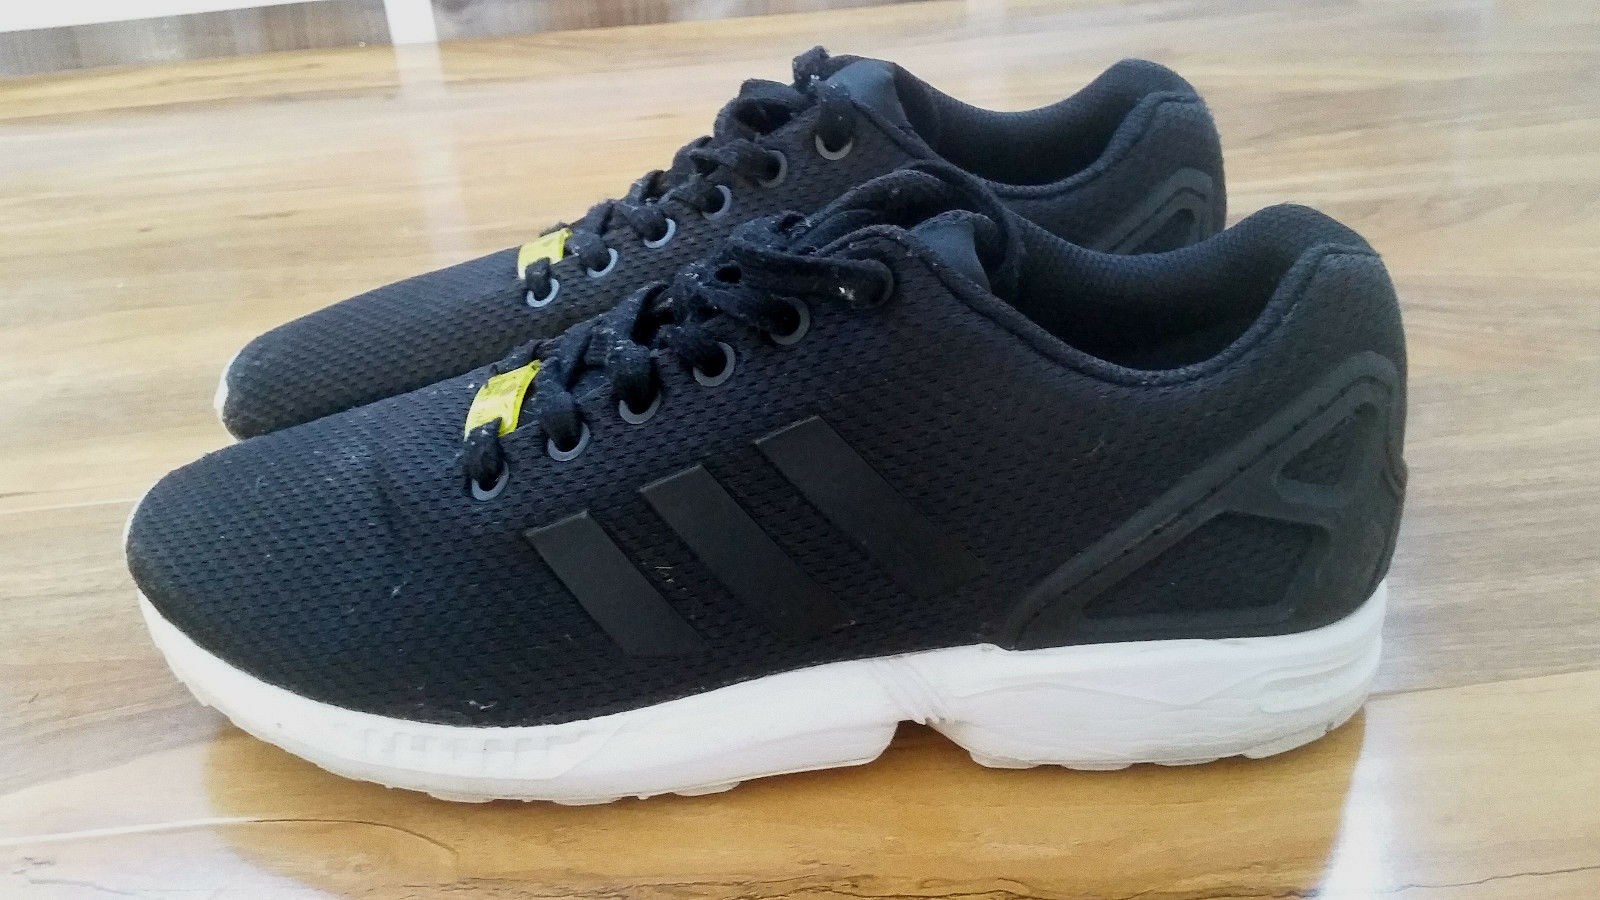 Adidas ZX Flux OG mens running Trainers in Black, size UK 8   42 EU BARGAIN